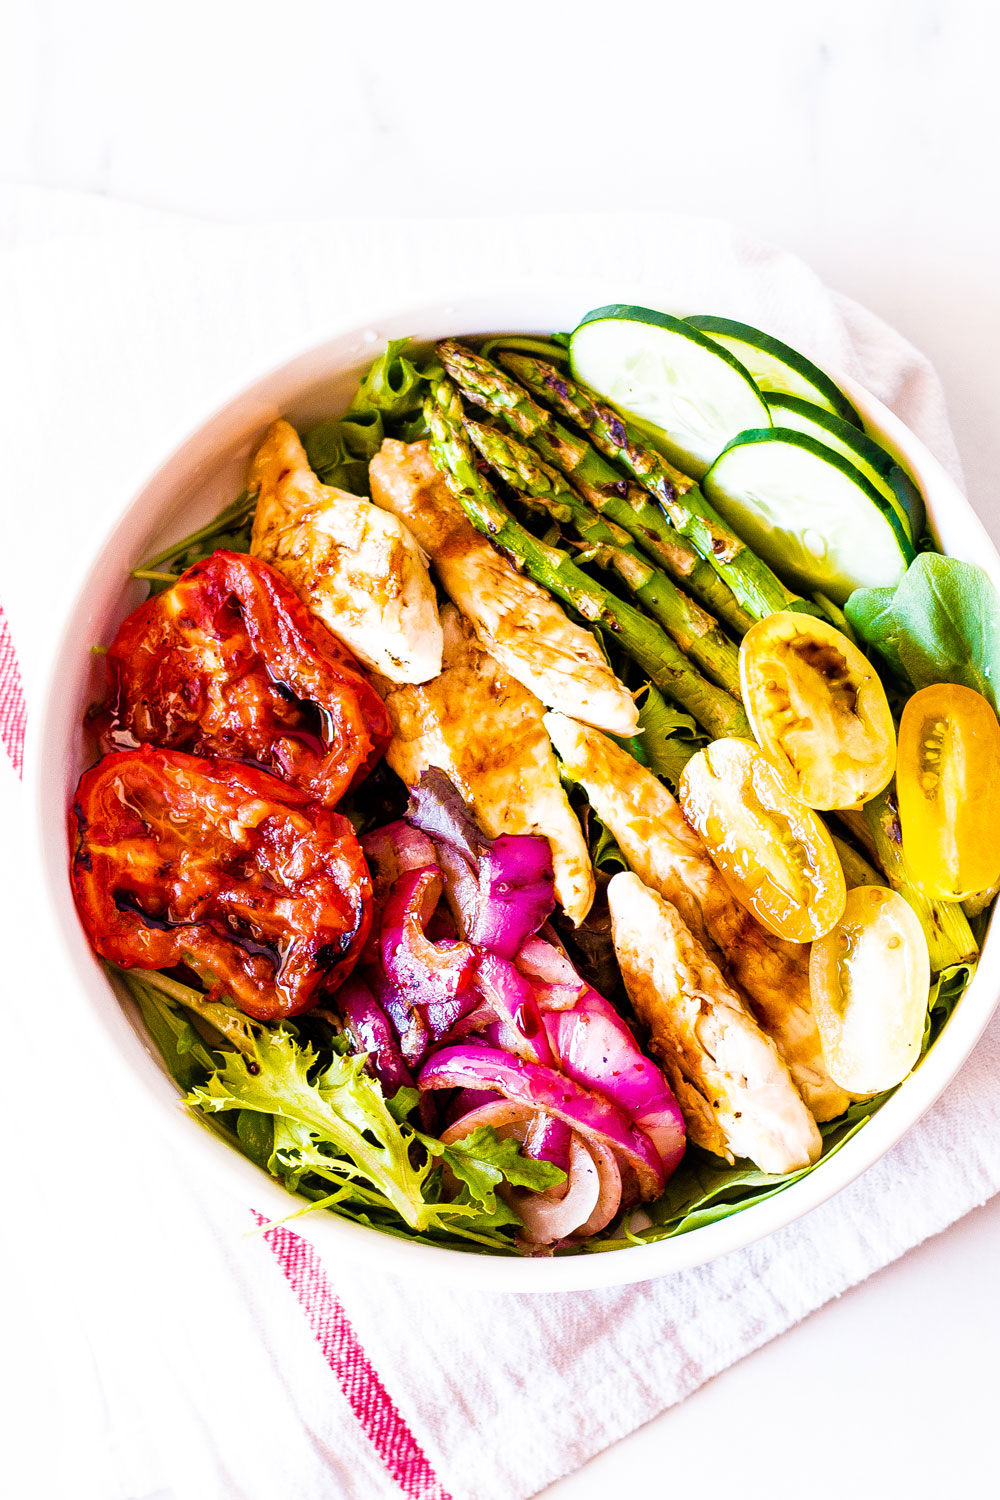 Salads have a reputation for being rather basic, but this grilled chicken and veggies low-carb summer salad is far from being boring! https://www.spotebi.com/recipes/grilled-chicken-vegetable-low-carb-summer-salad/